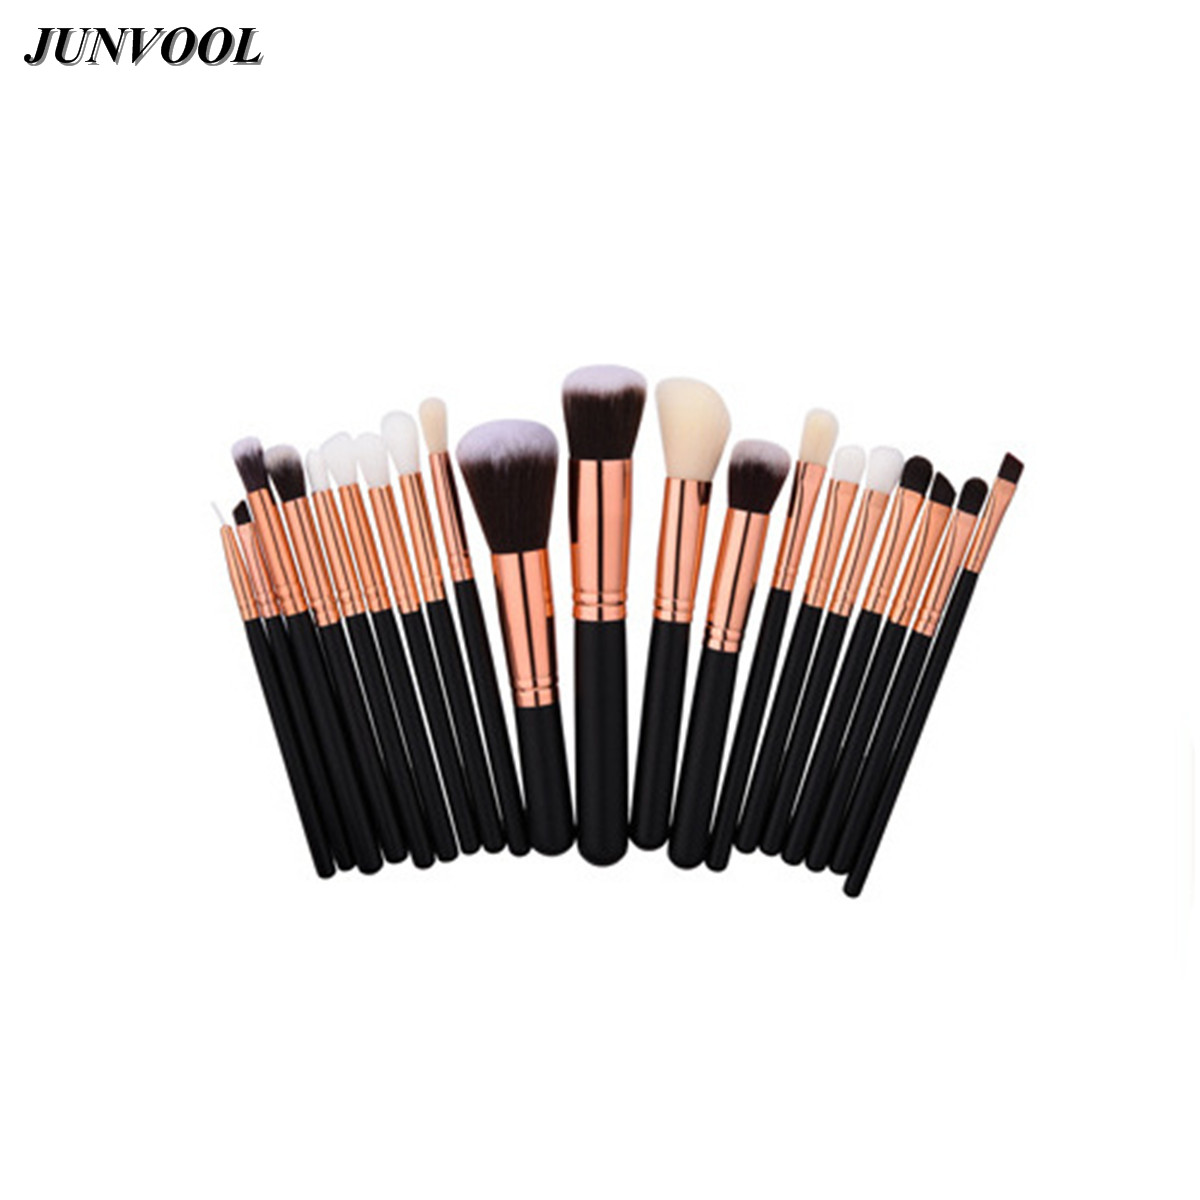 Fashion Make Up Brush Tools Kit 20pcs Rose Gold/Black Professional Makeup Brushes Set Foundation Powder Definer Shader Liner 10pcs tooth brush shape oval makeup brush set multipurpose makeup brushes professional foundation powder brush kits make up tool